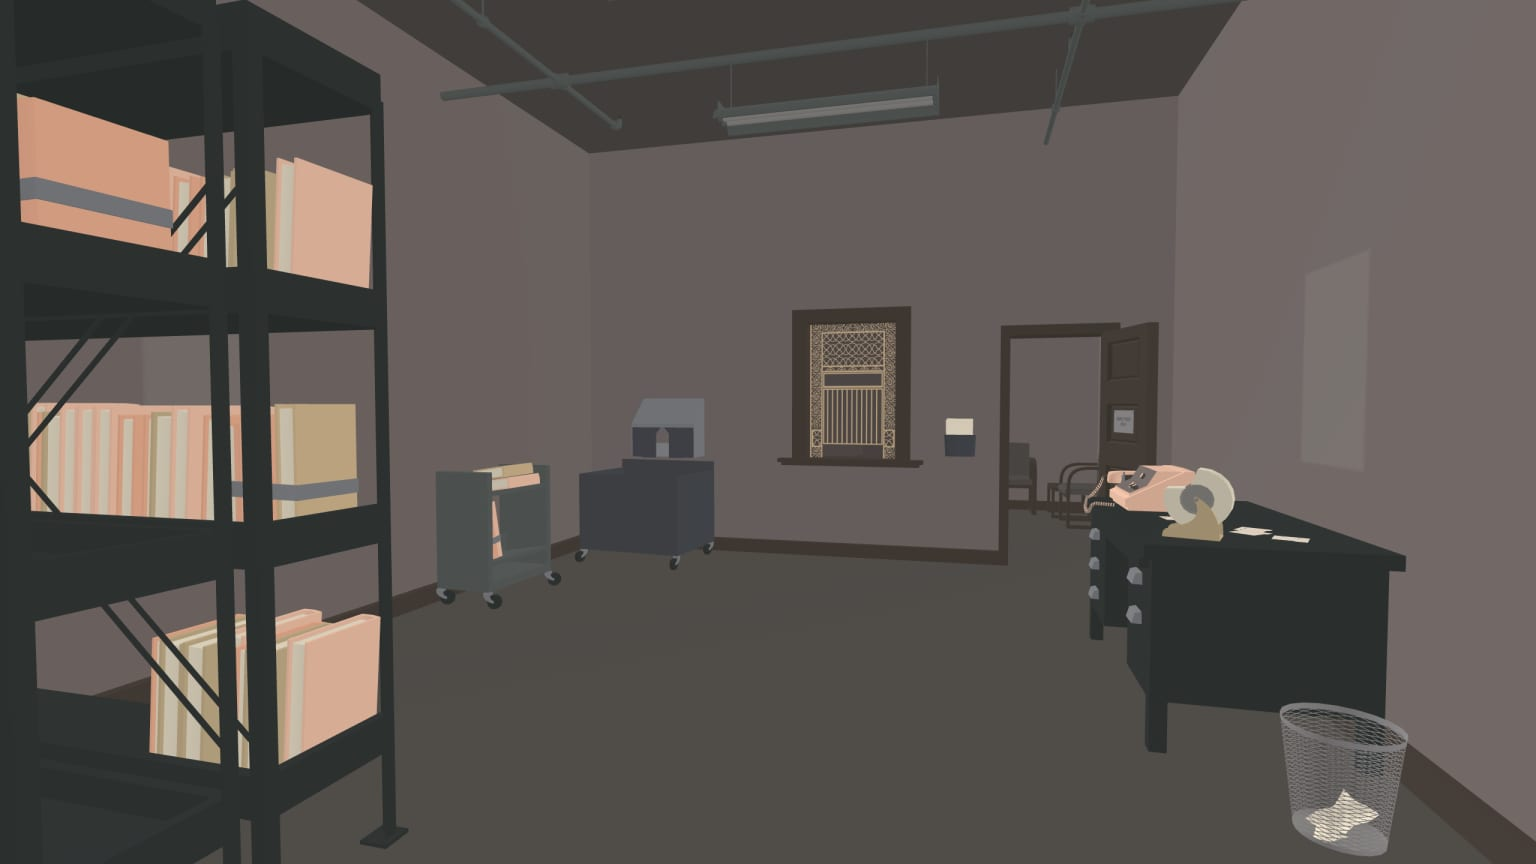 Am I Better... (Game Prototype)